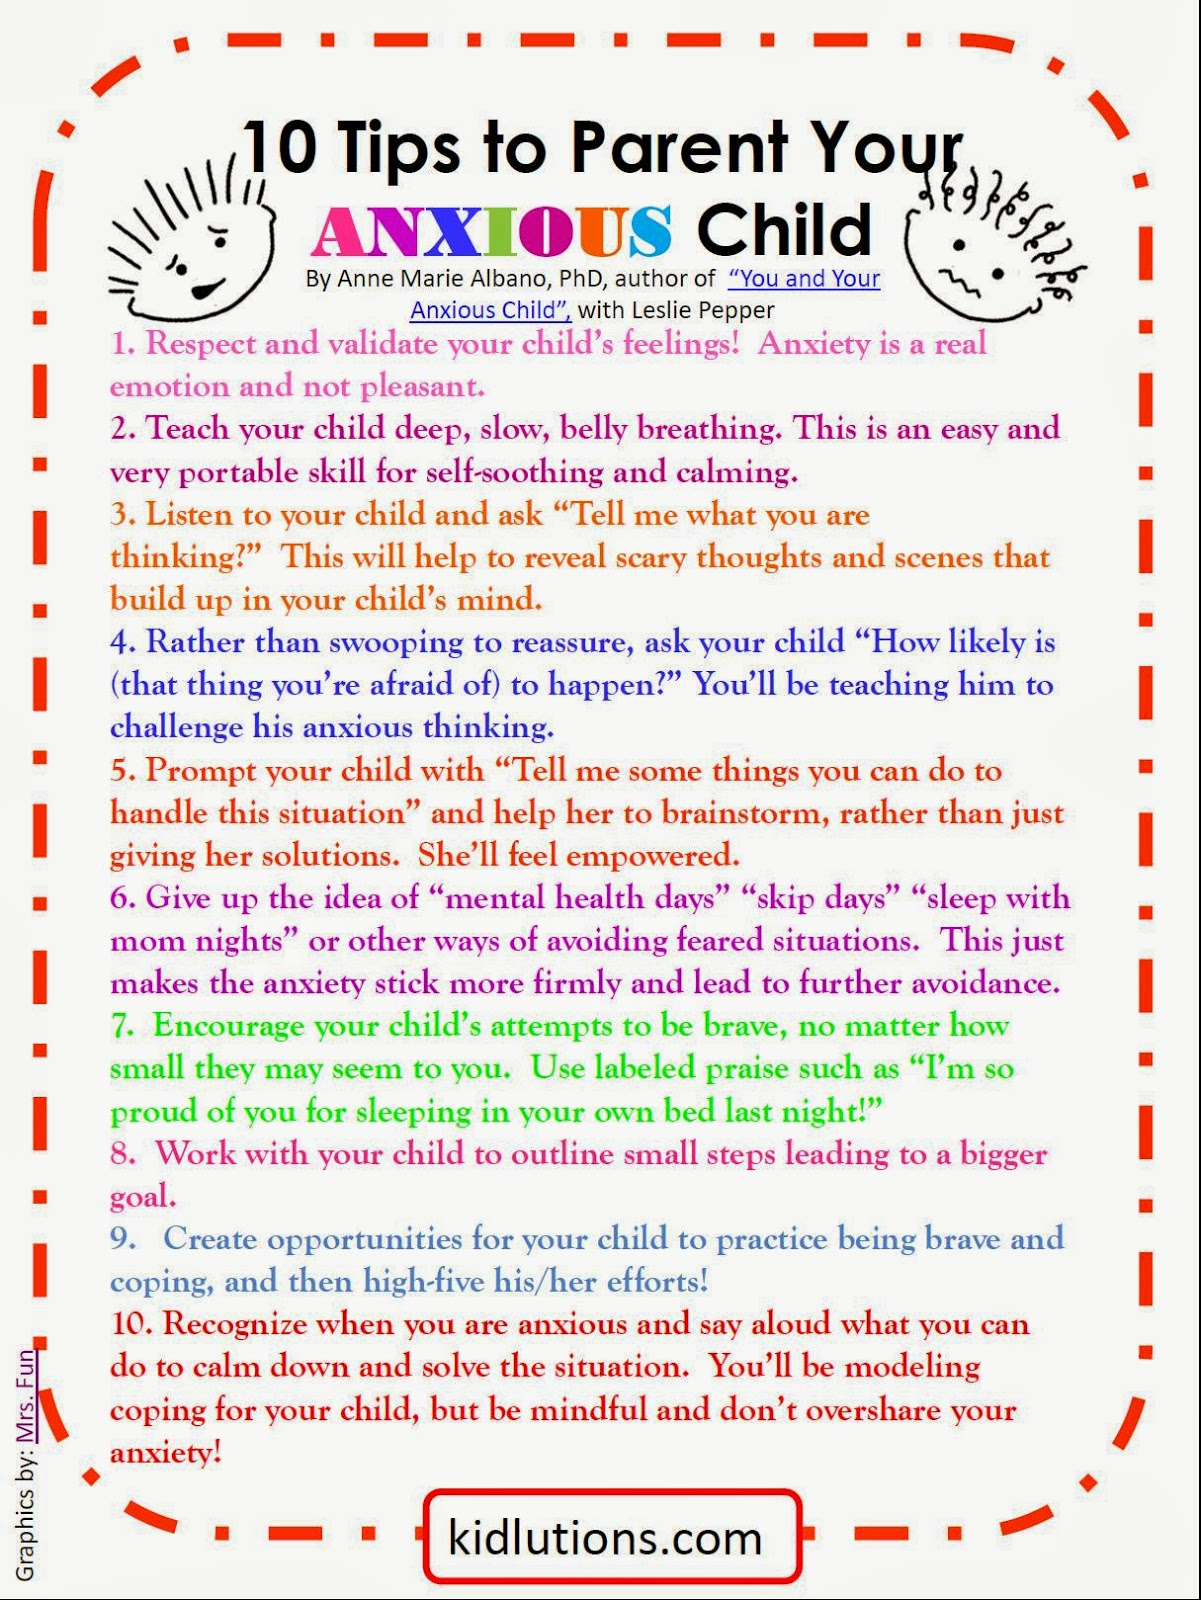 Worksheets Anxiety Worksheets For Children 10 tips to parent your anxious child